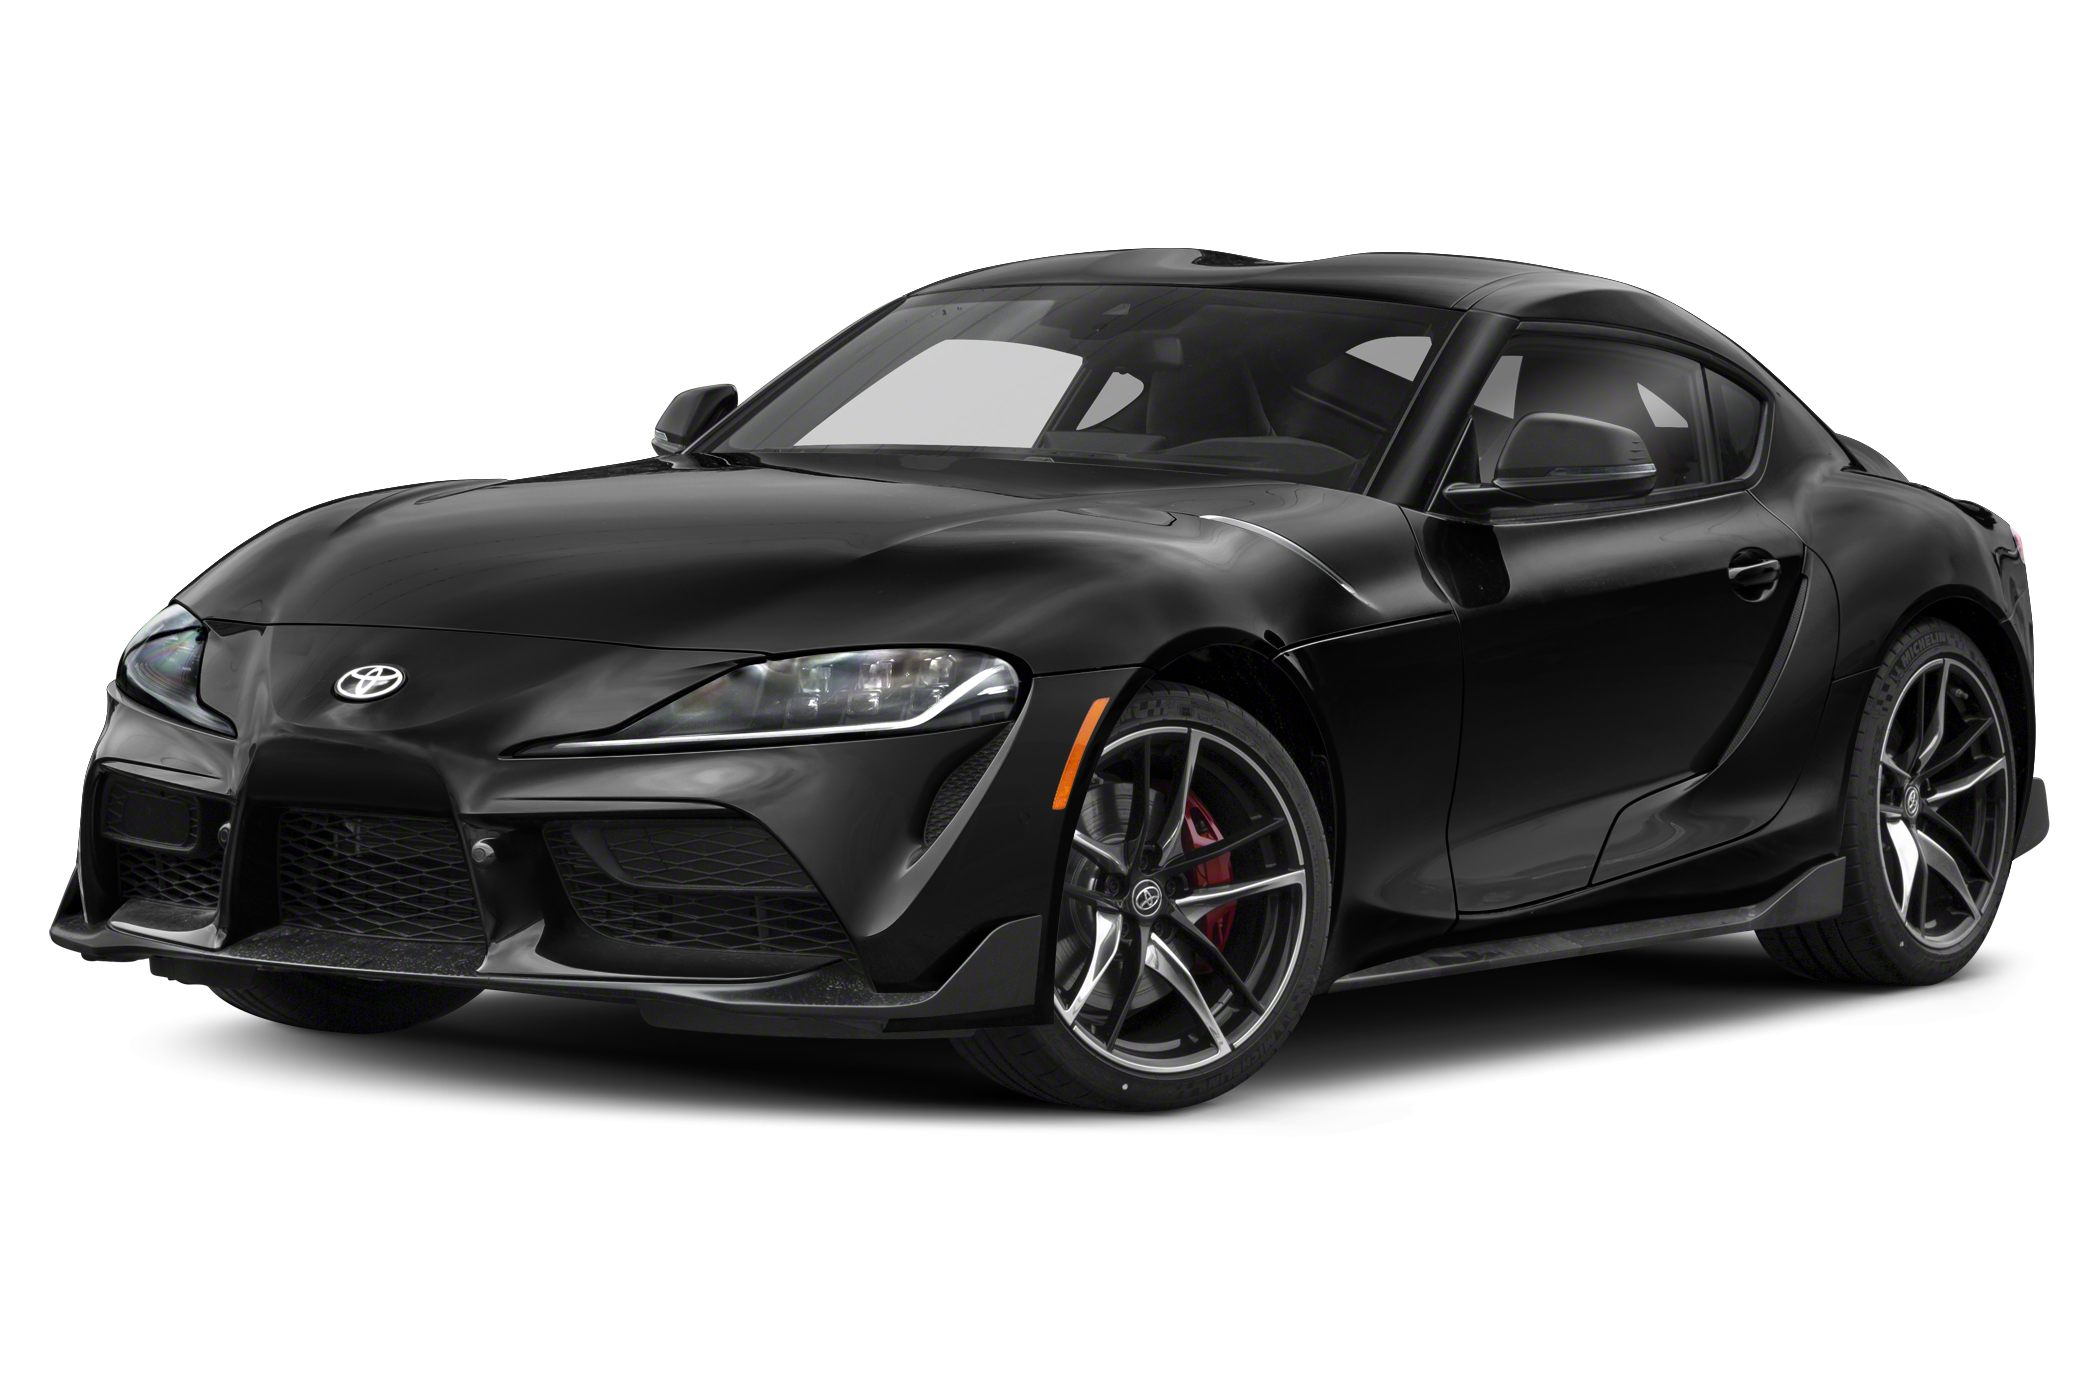 2020 Toyota Supra listed for $100,000 at Baltimore dealer - Autoblog